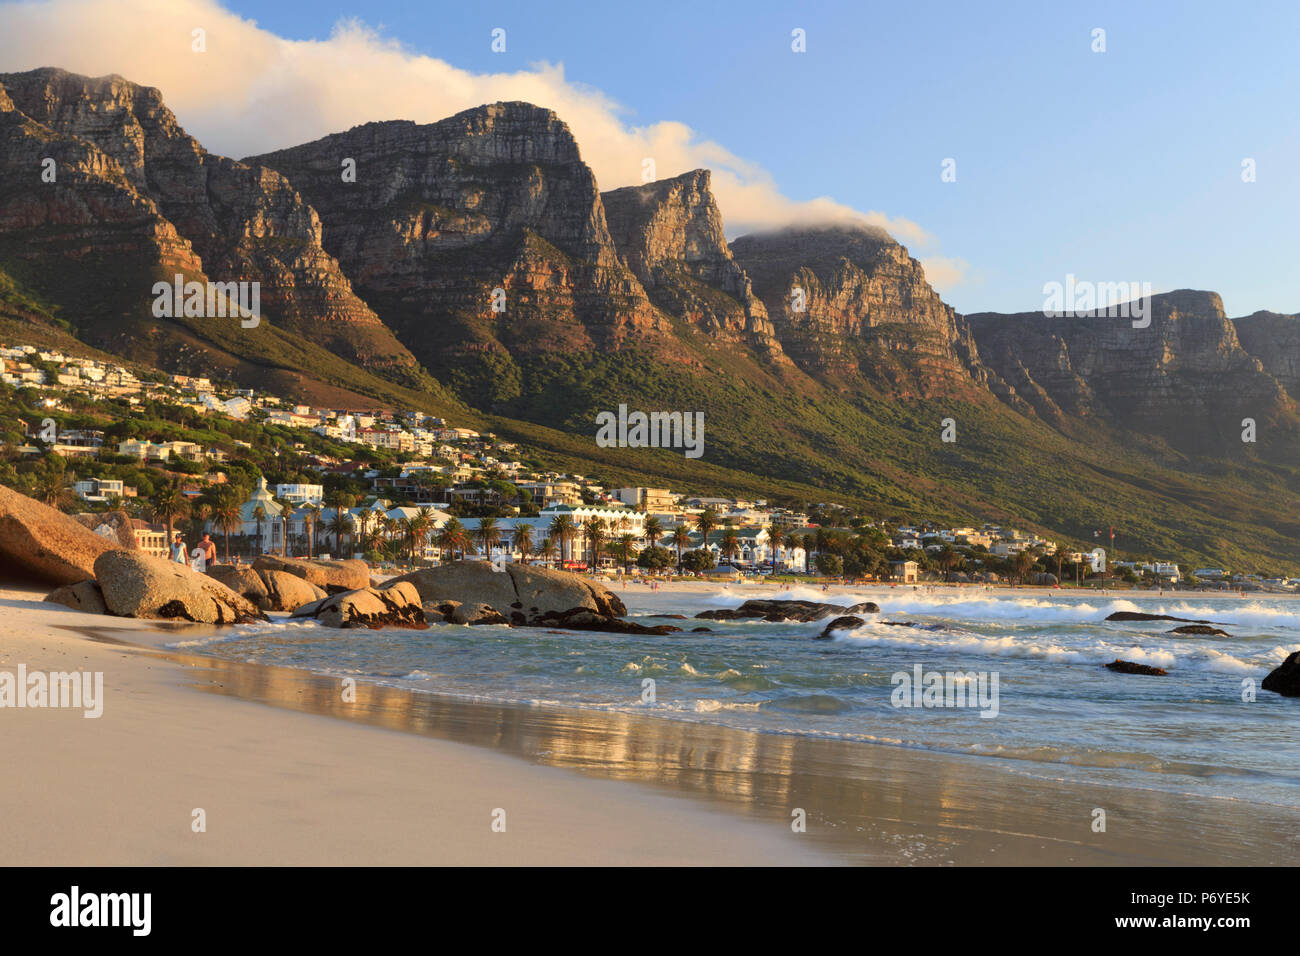 South Africa, Western Cape, Cape Town, Camps Bay - Stock Image